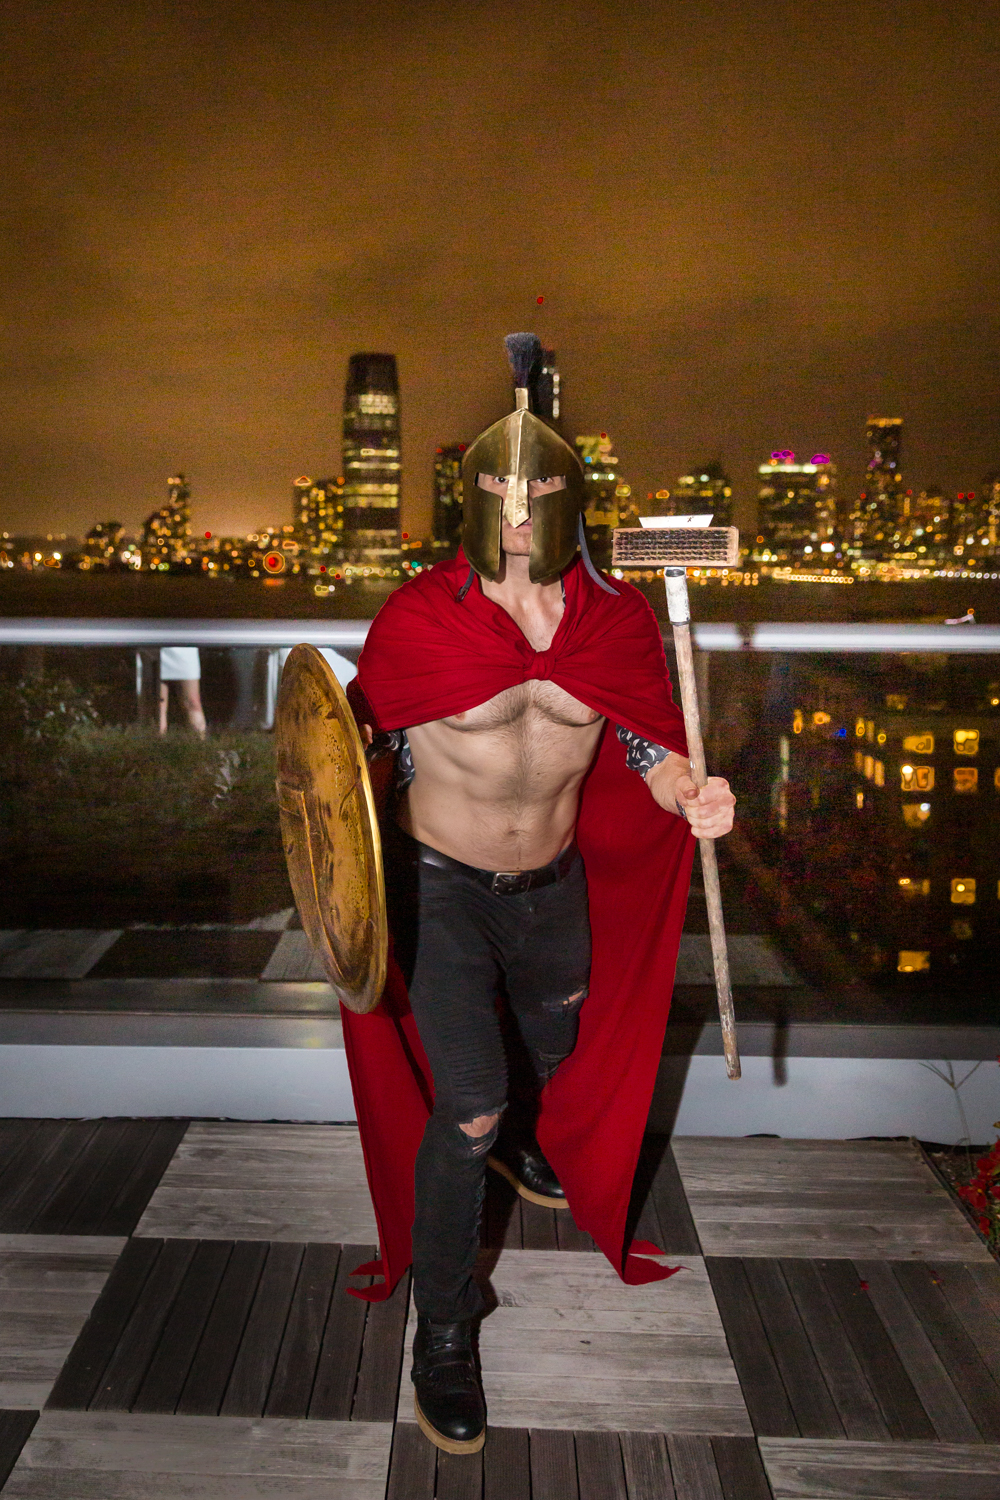 Birthday party photography of guest dressed in gladiator uniform and helmet